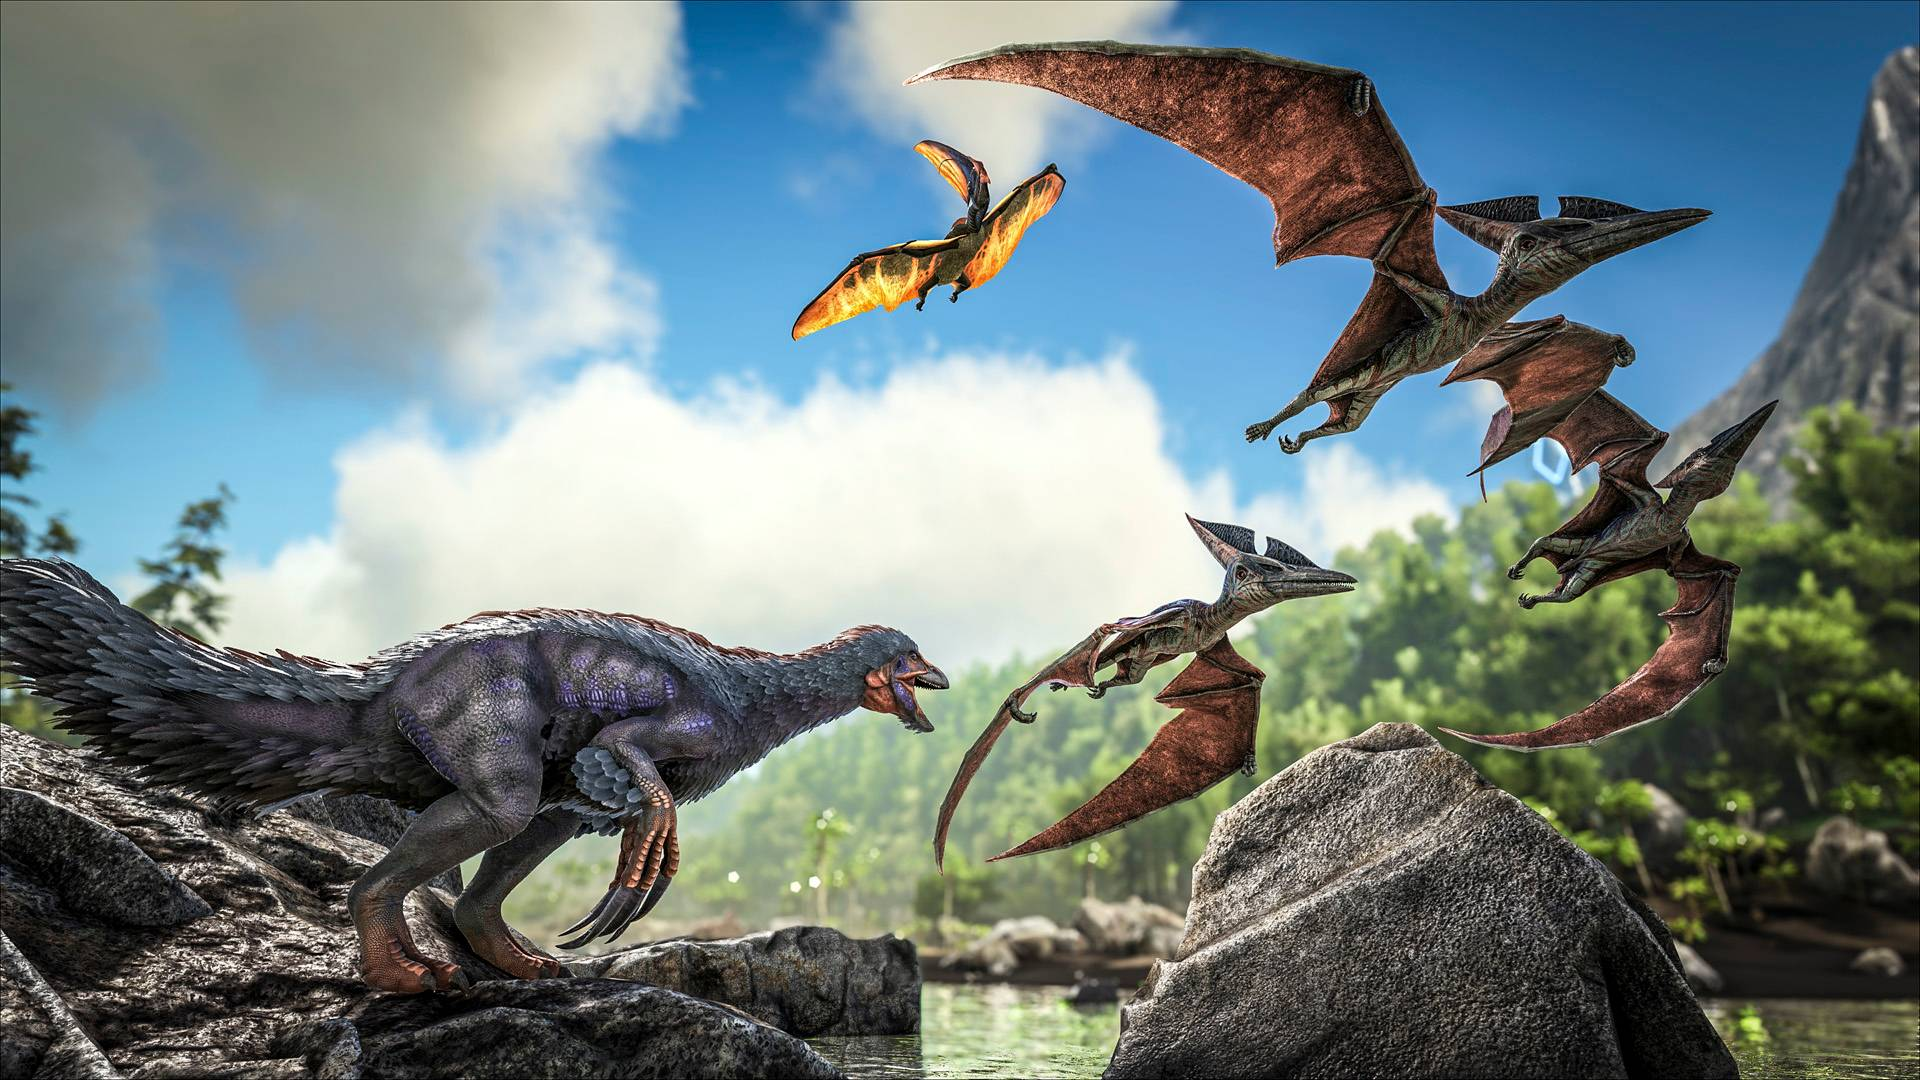 Ark: Survival Evolved devs are piloting a new community feature showing what players get up to